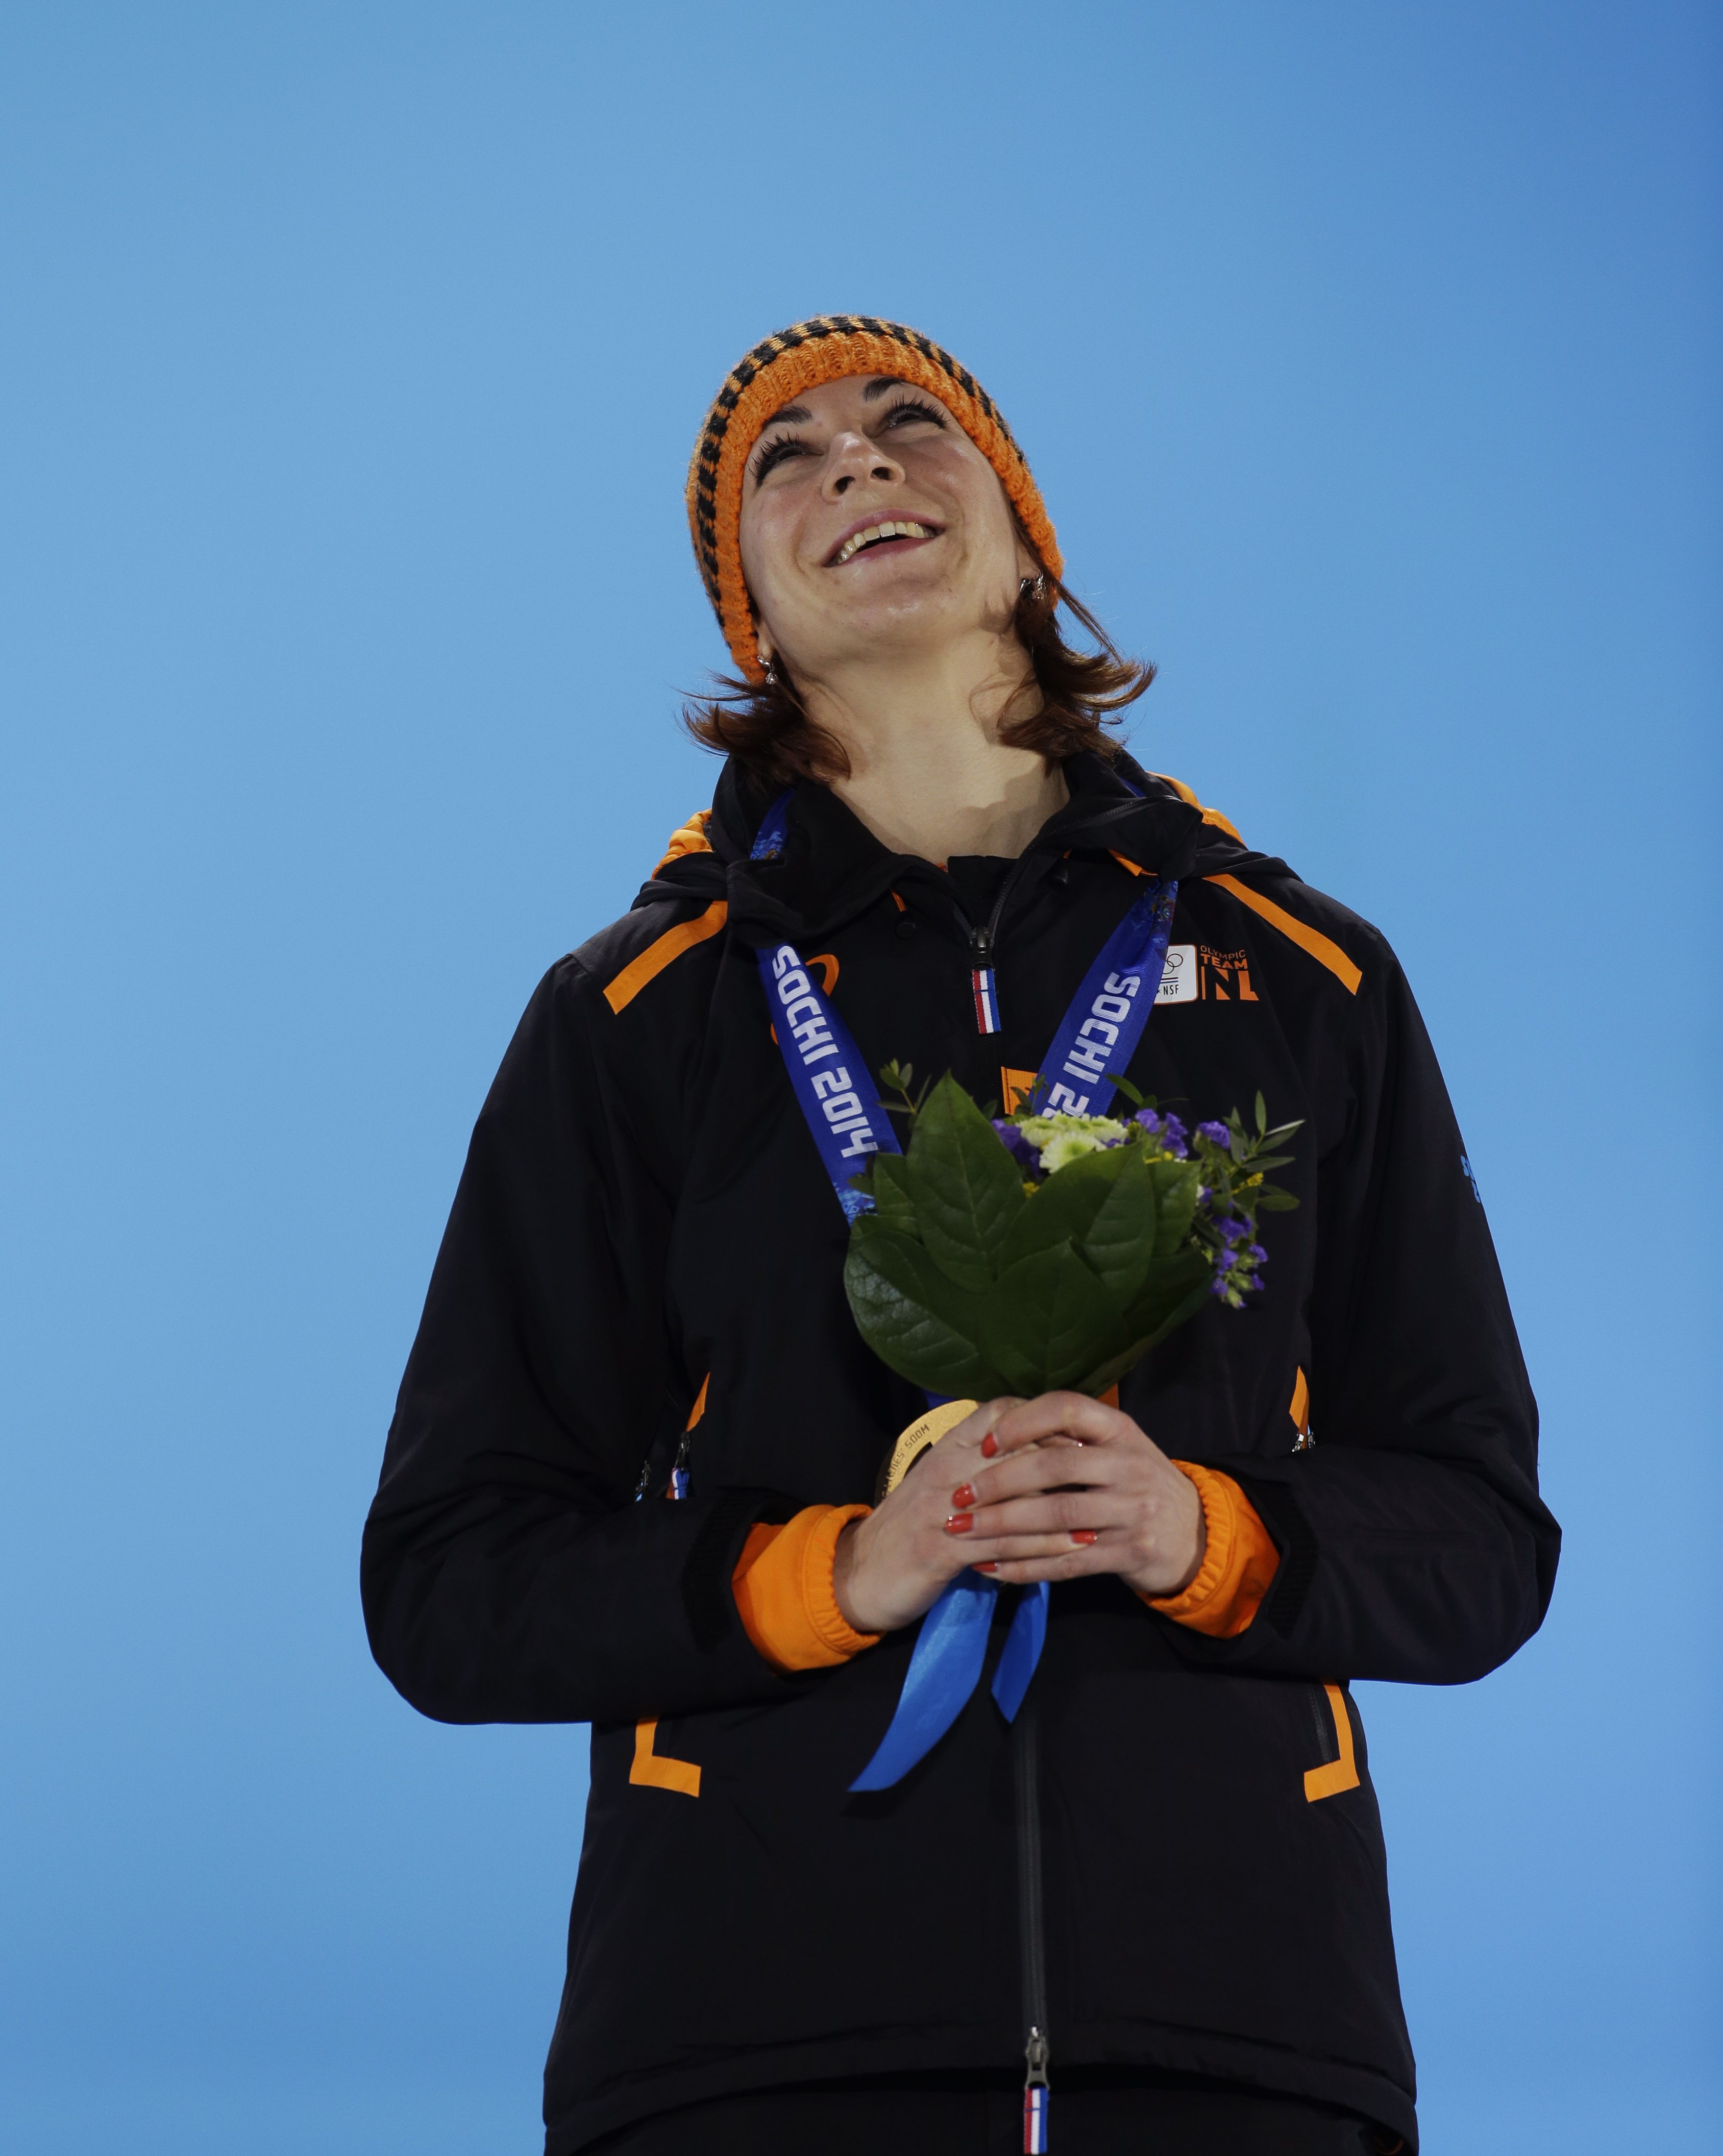 Women's 500-meter speedskating bronze medalist Margot Boer of the Netherlands smiles during the medals ceremony at the 2014 Winter Olympics, Wednesday, Feb. 12, 2014, in Sochi, Russia. (AP Photo/Morry Gash)